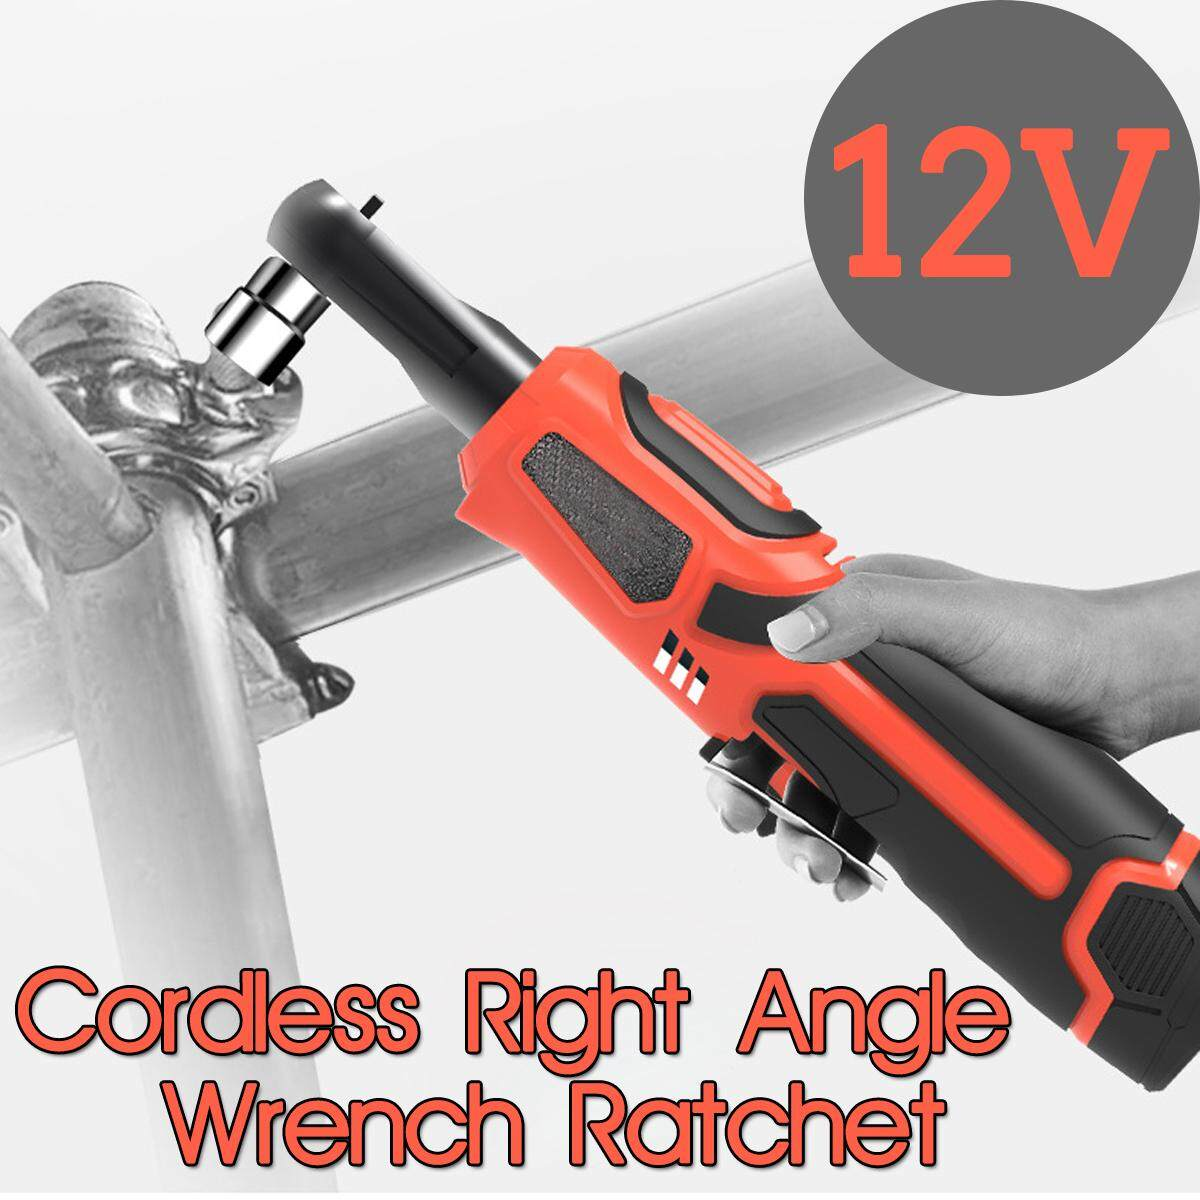 【Free Shipping + Flash Deal】Rechargeable Cordless Electric Ratchet Wrench 12V Right Angle 3/8 Wrench Tools